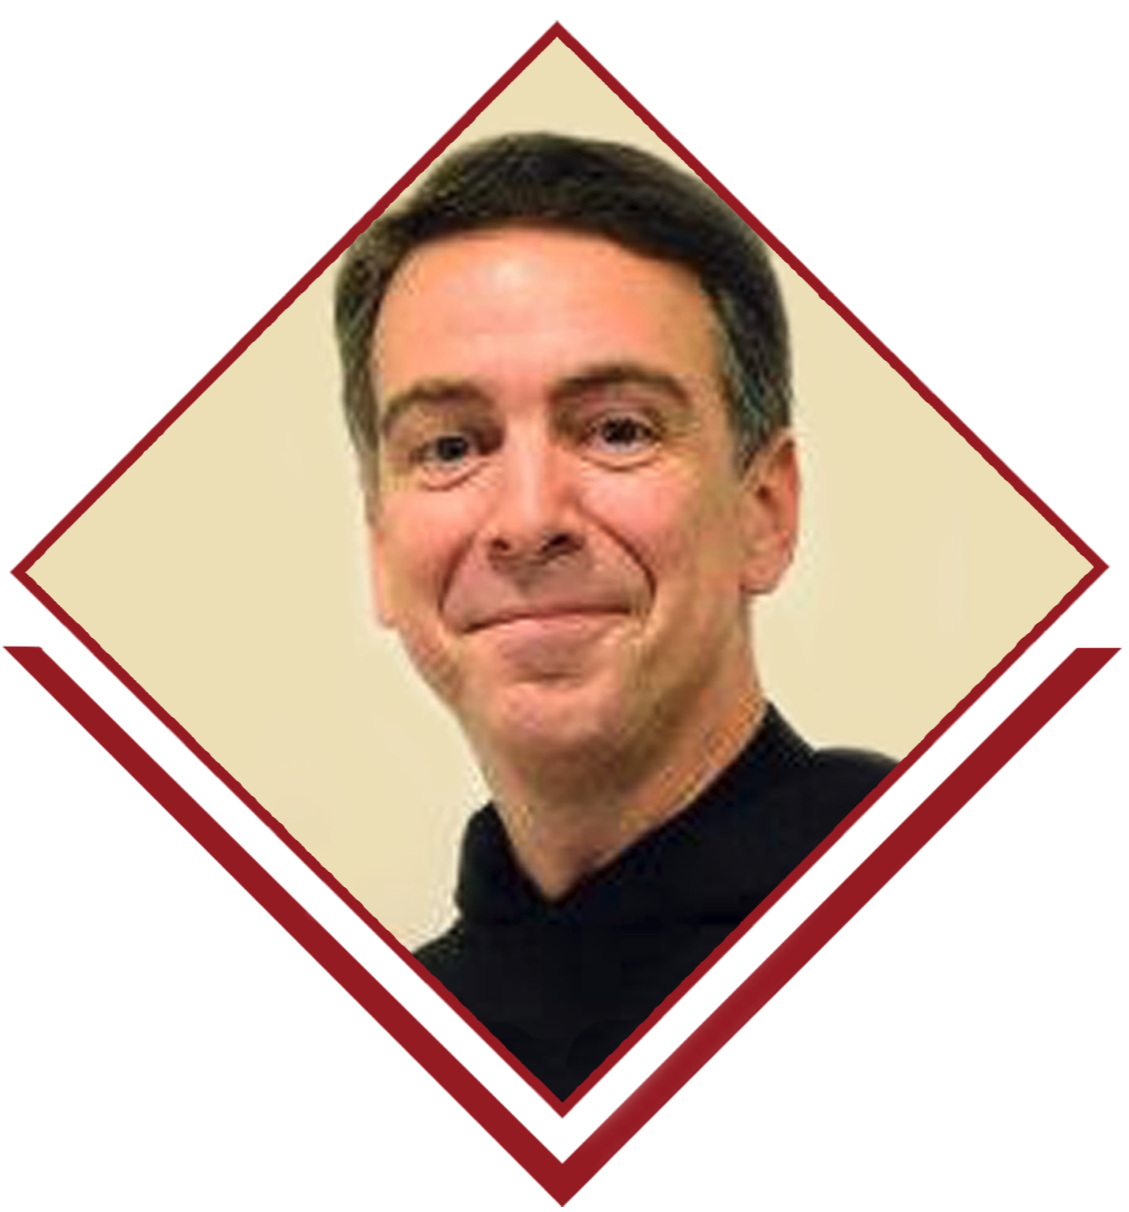 Fr. Joe Farrell, O.S.A., Vicar General of the Augustinian Order